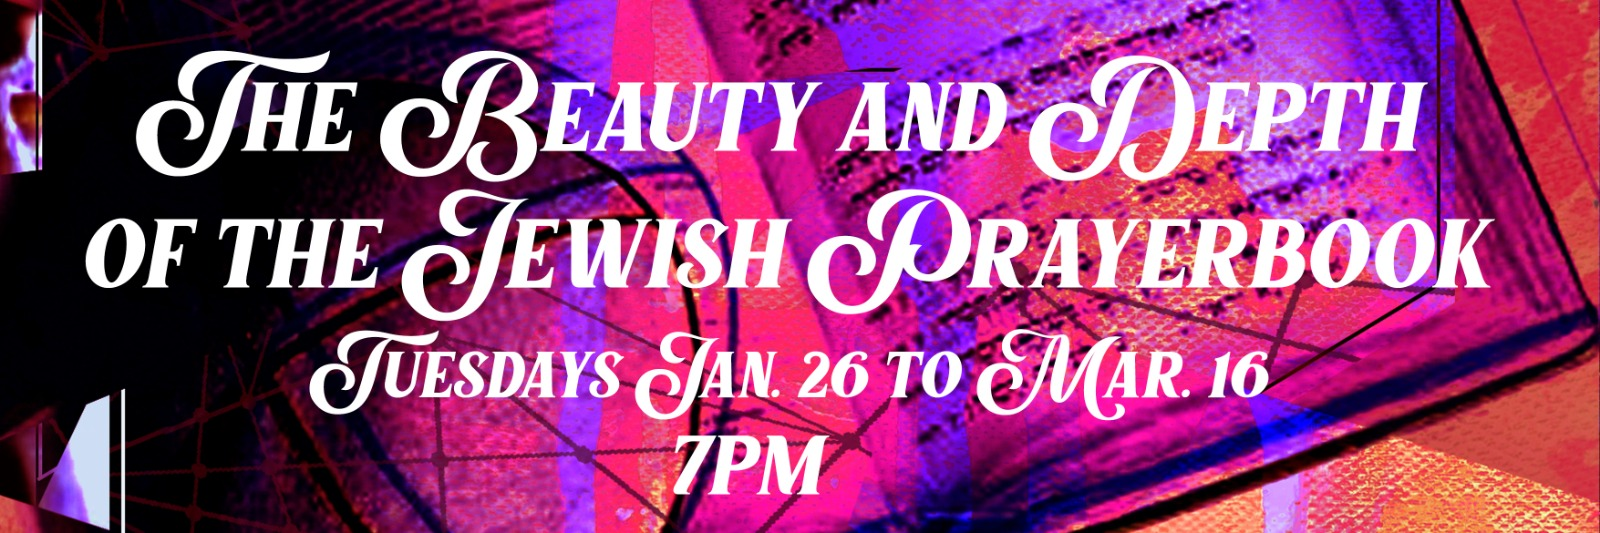 Banner Image for The Beauty and Depth of the Jewish Prayerbook